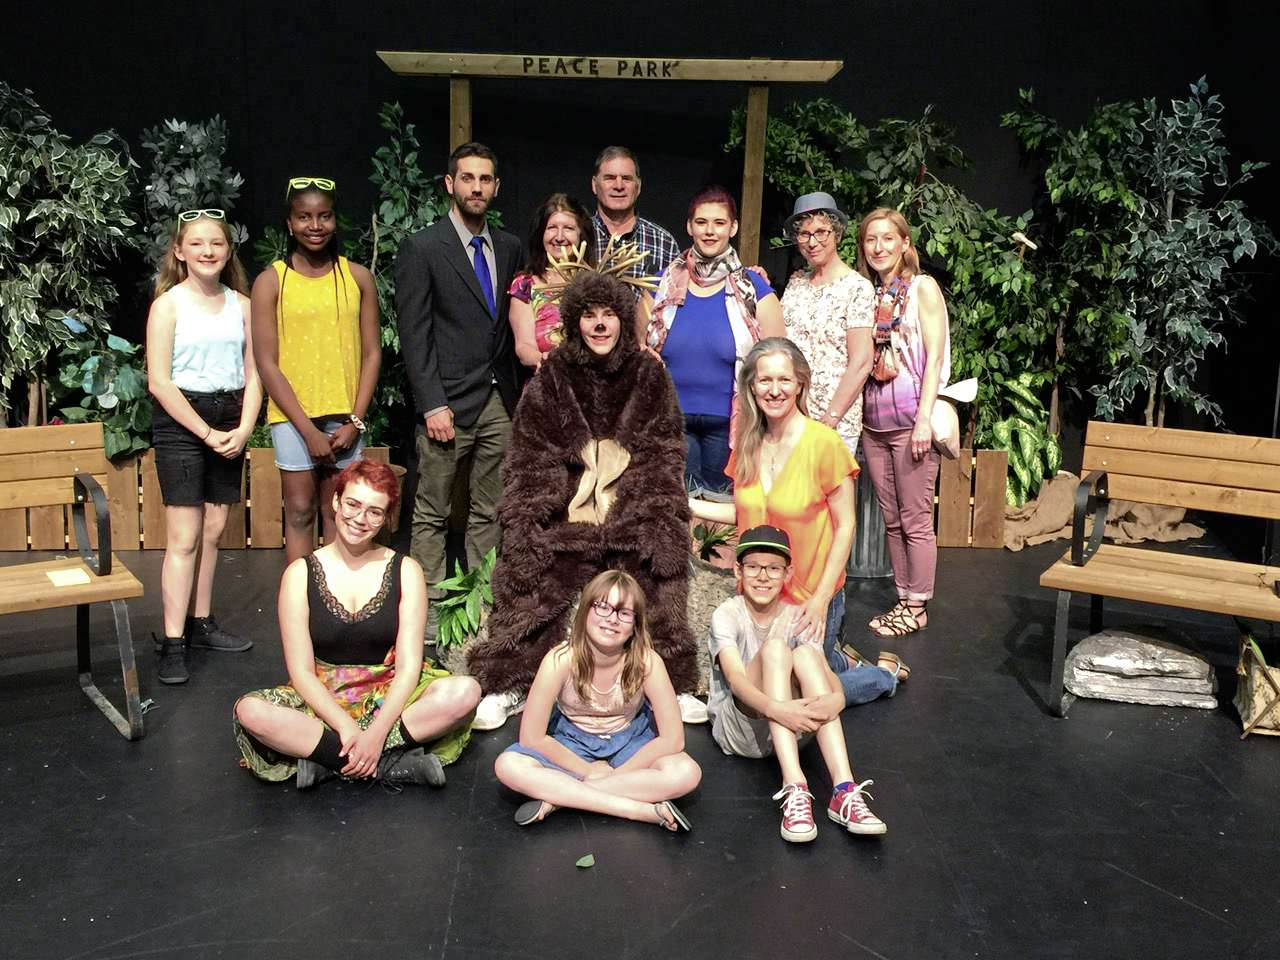 The cast and crew of Spikey's Points is pictured here.